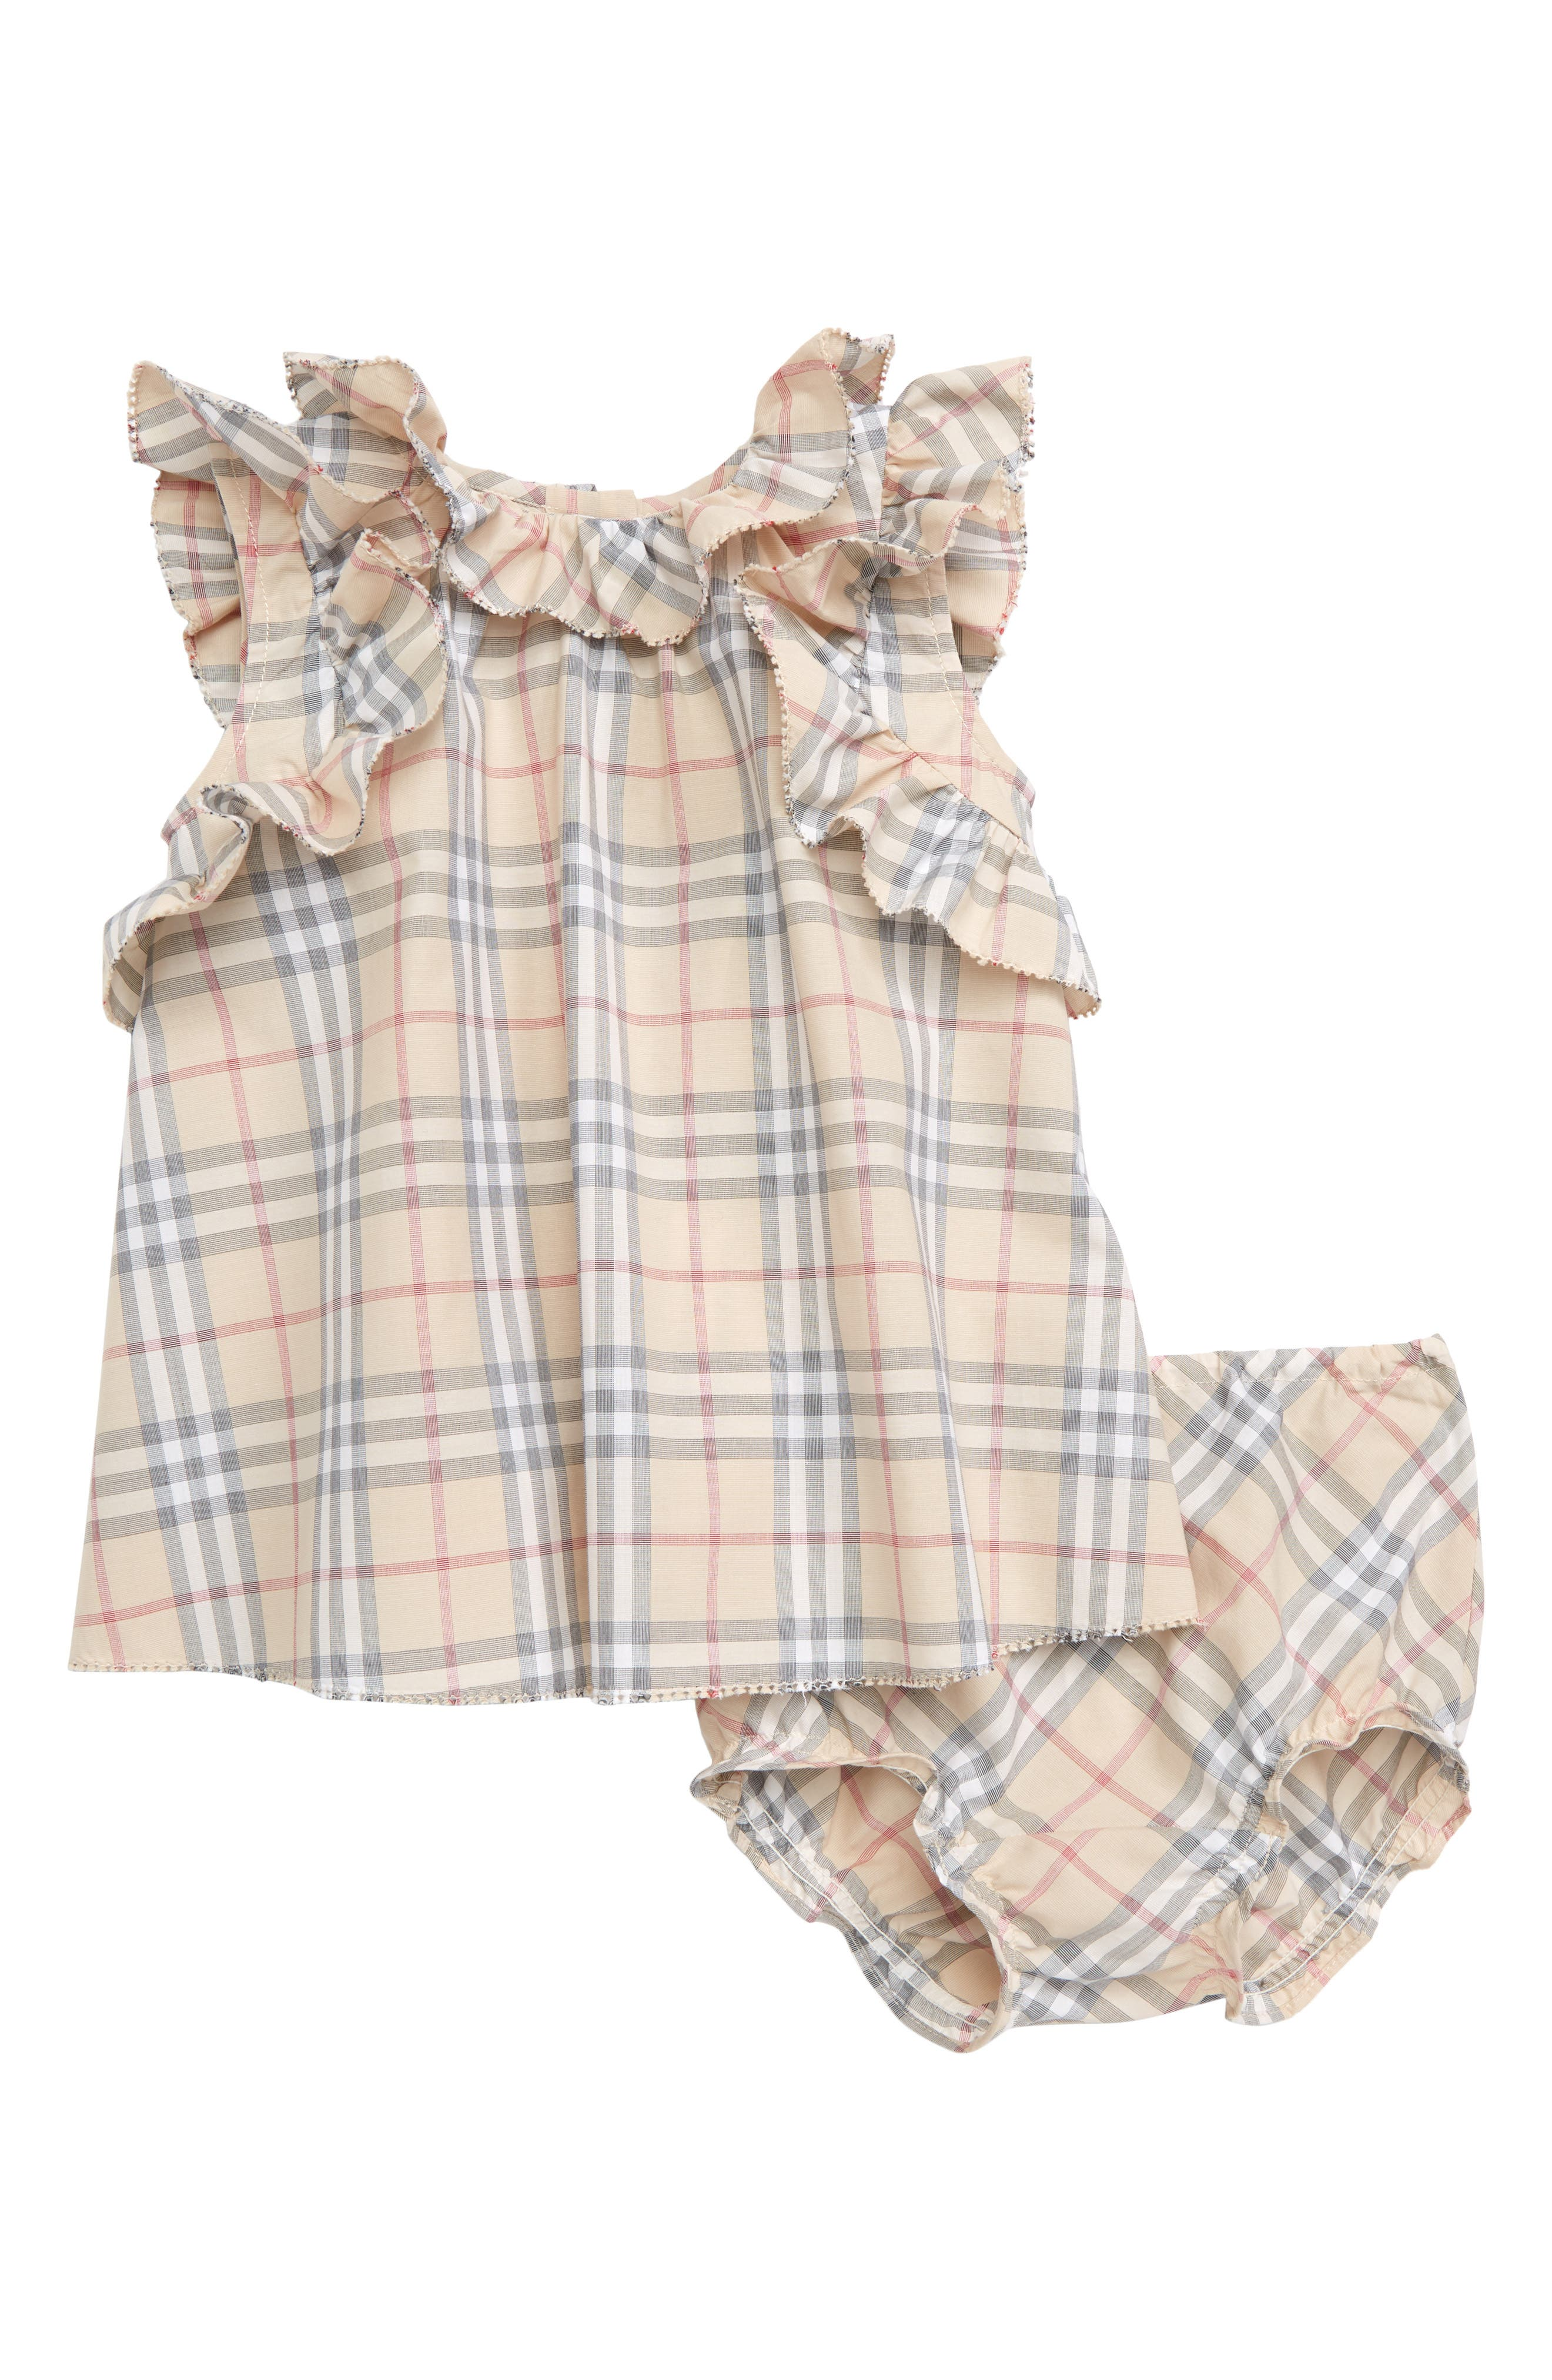 Carla Swing Top & Bloomers Set,                             Main thumbnail 1, color,                             PALE STONE IP CHECK